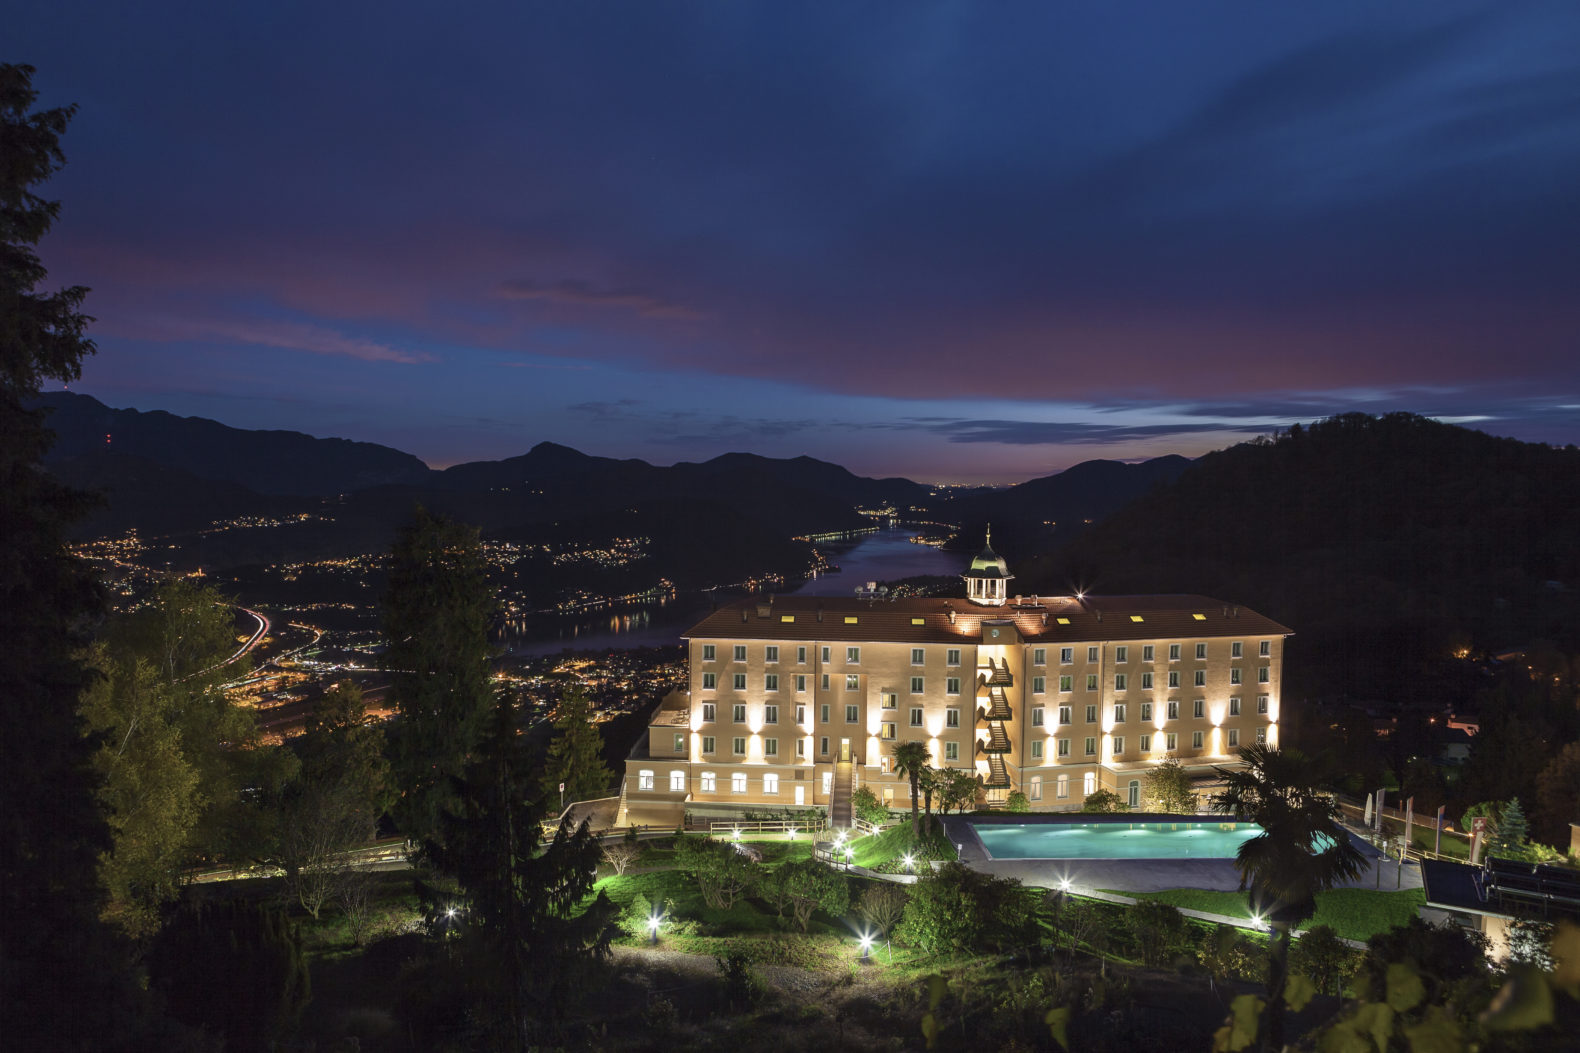 kurhaus_cademario_hotel_spa_outside_building-night_switzerland